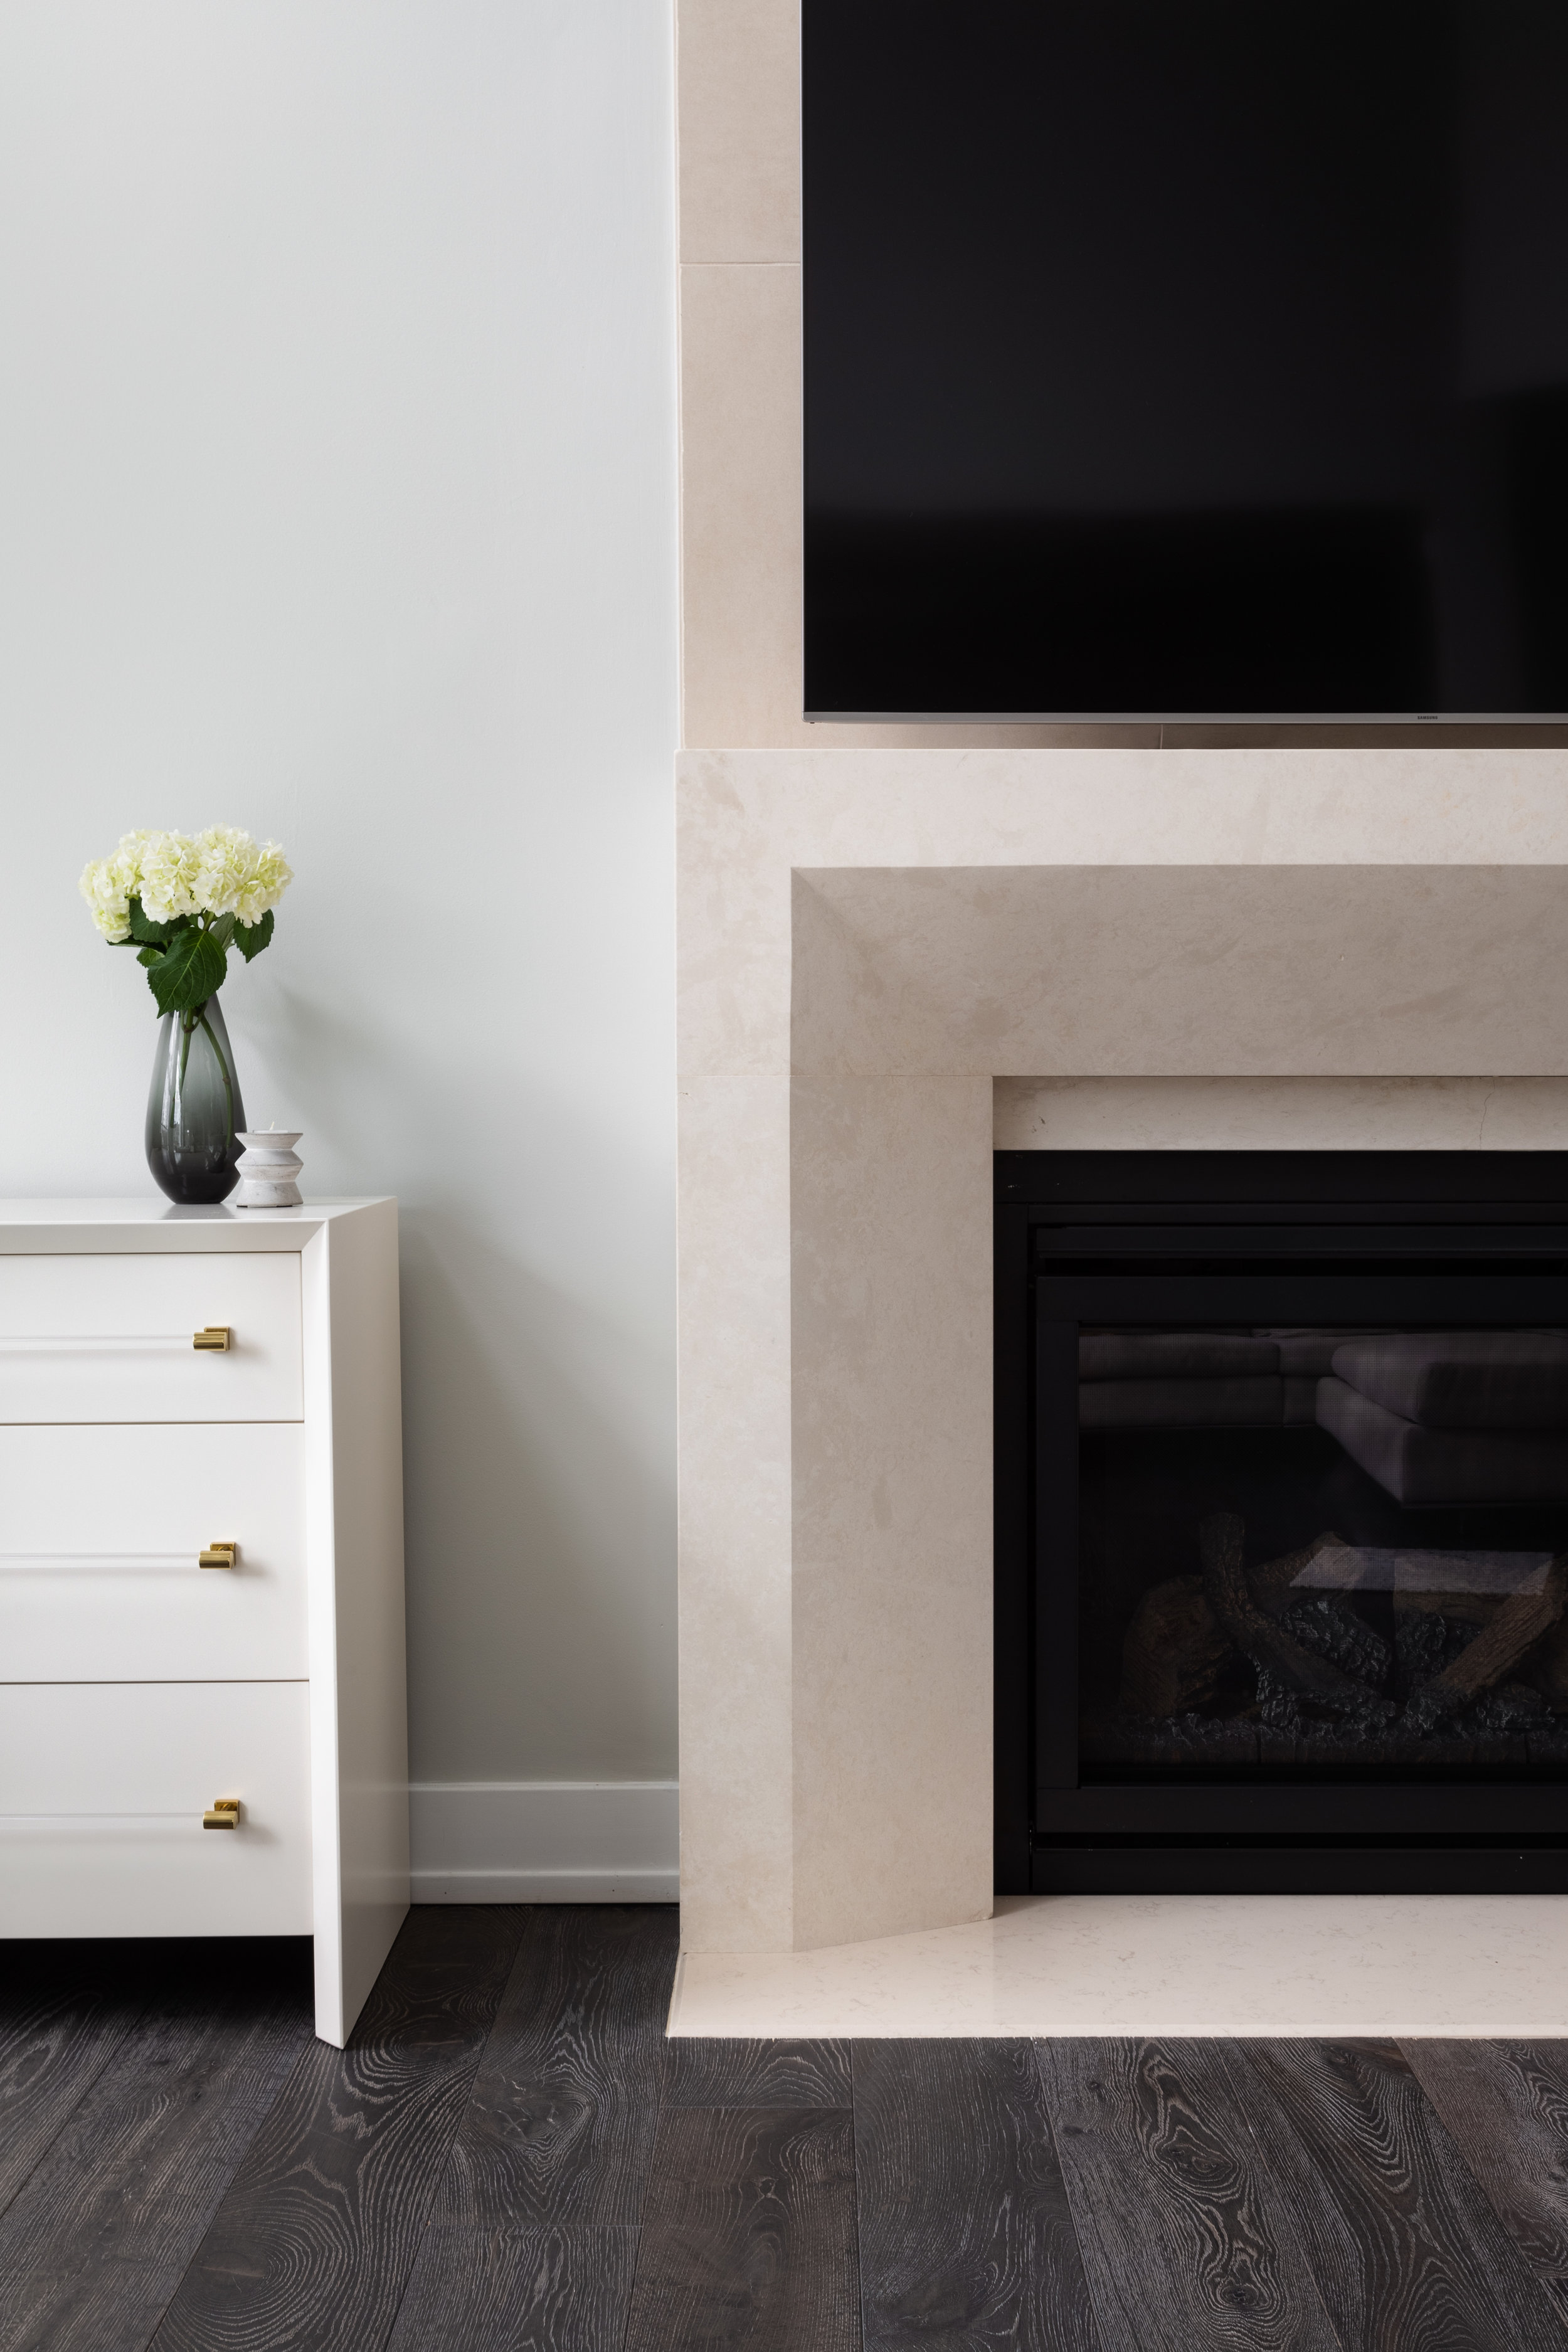 We're still furnishing this room, so we'll reveal the full family room in a later post, but here's a peak of the fireplace we designed with  Paris Ceramics.